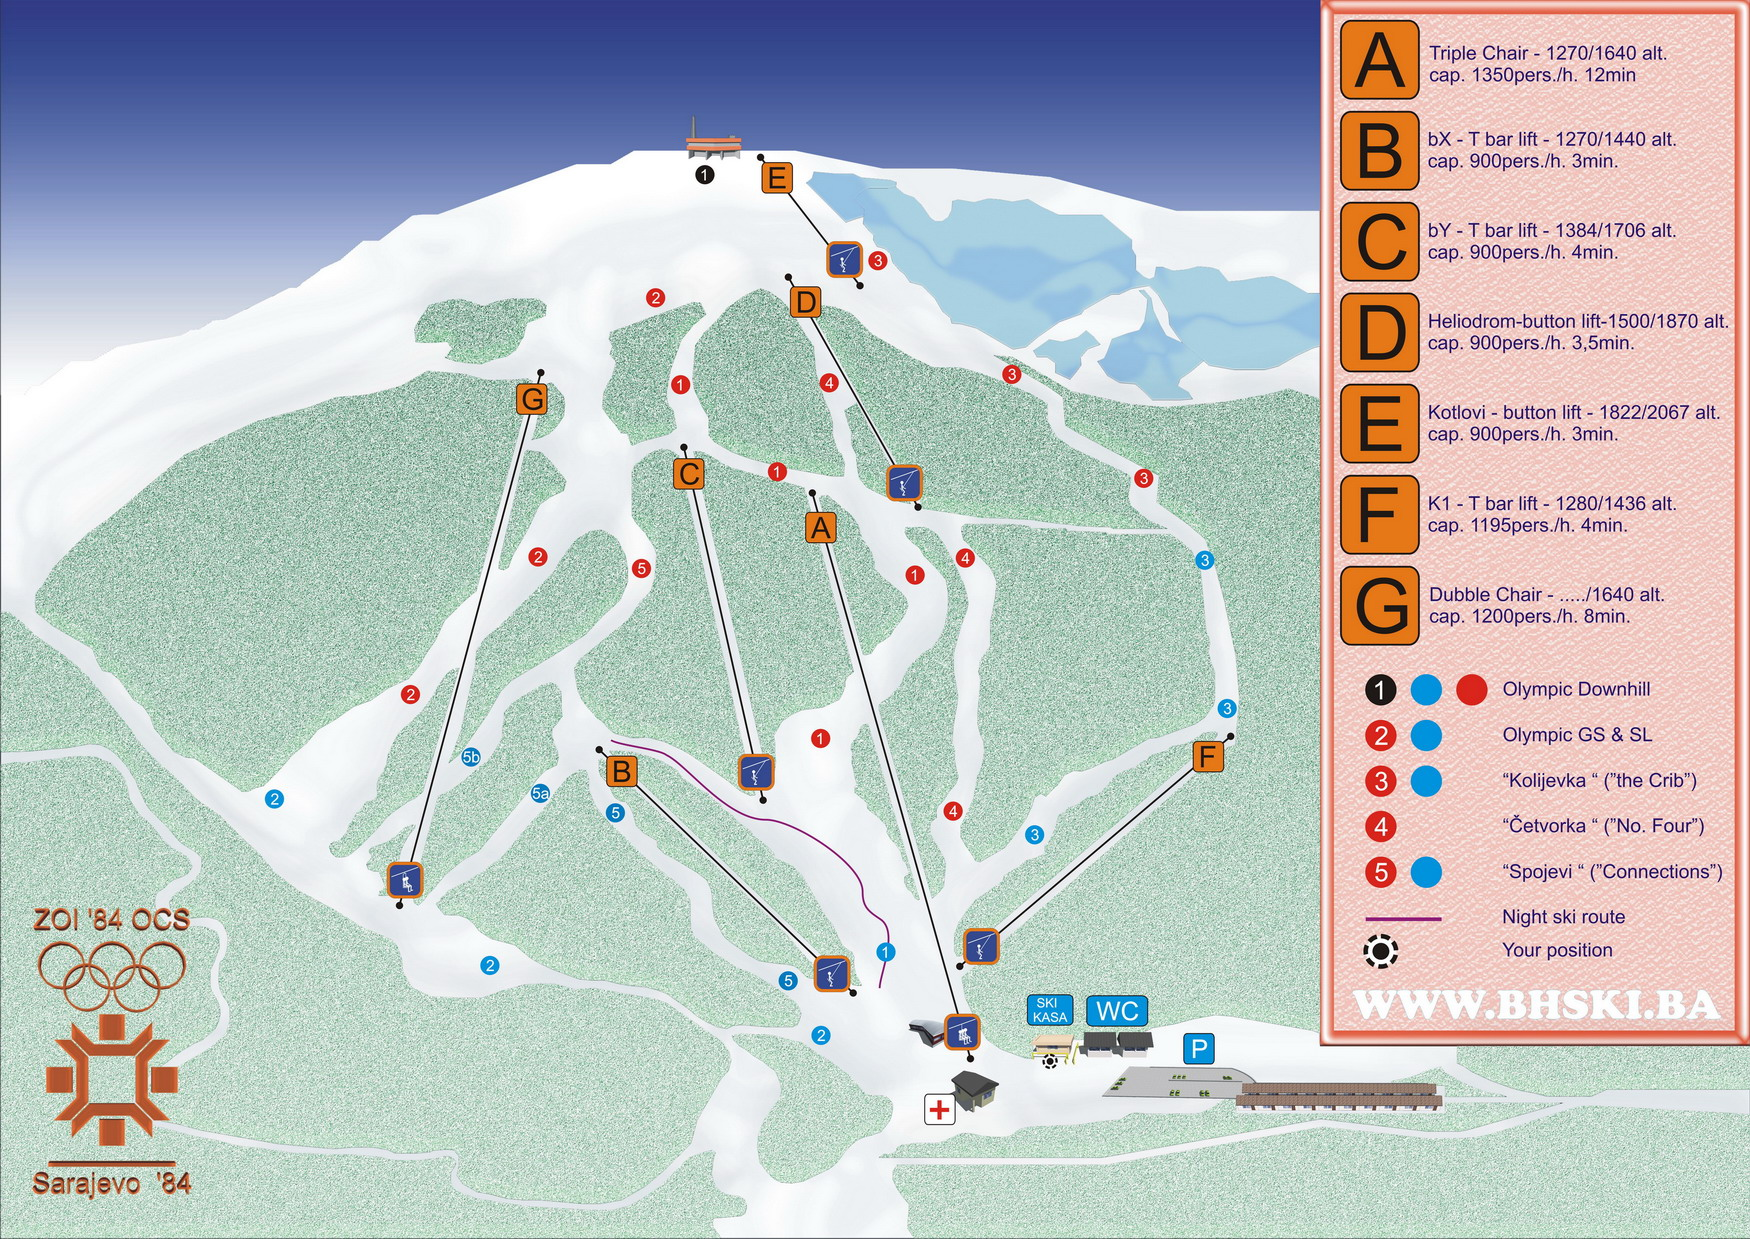 Bjelašnica Piste / Trail Map